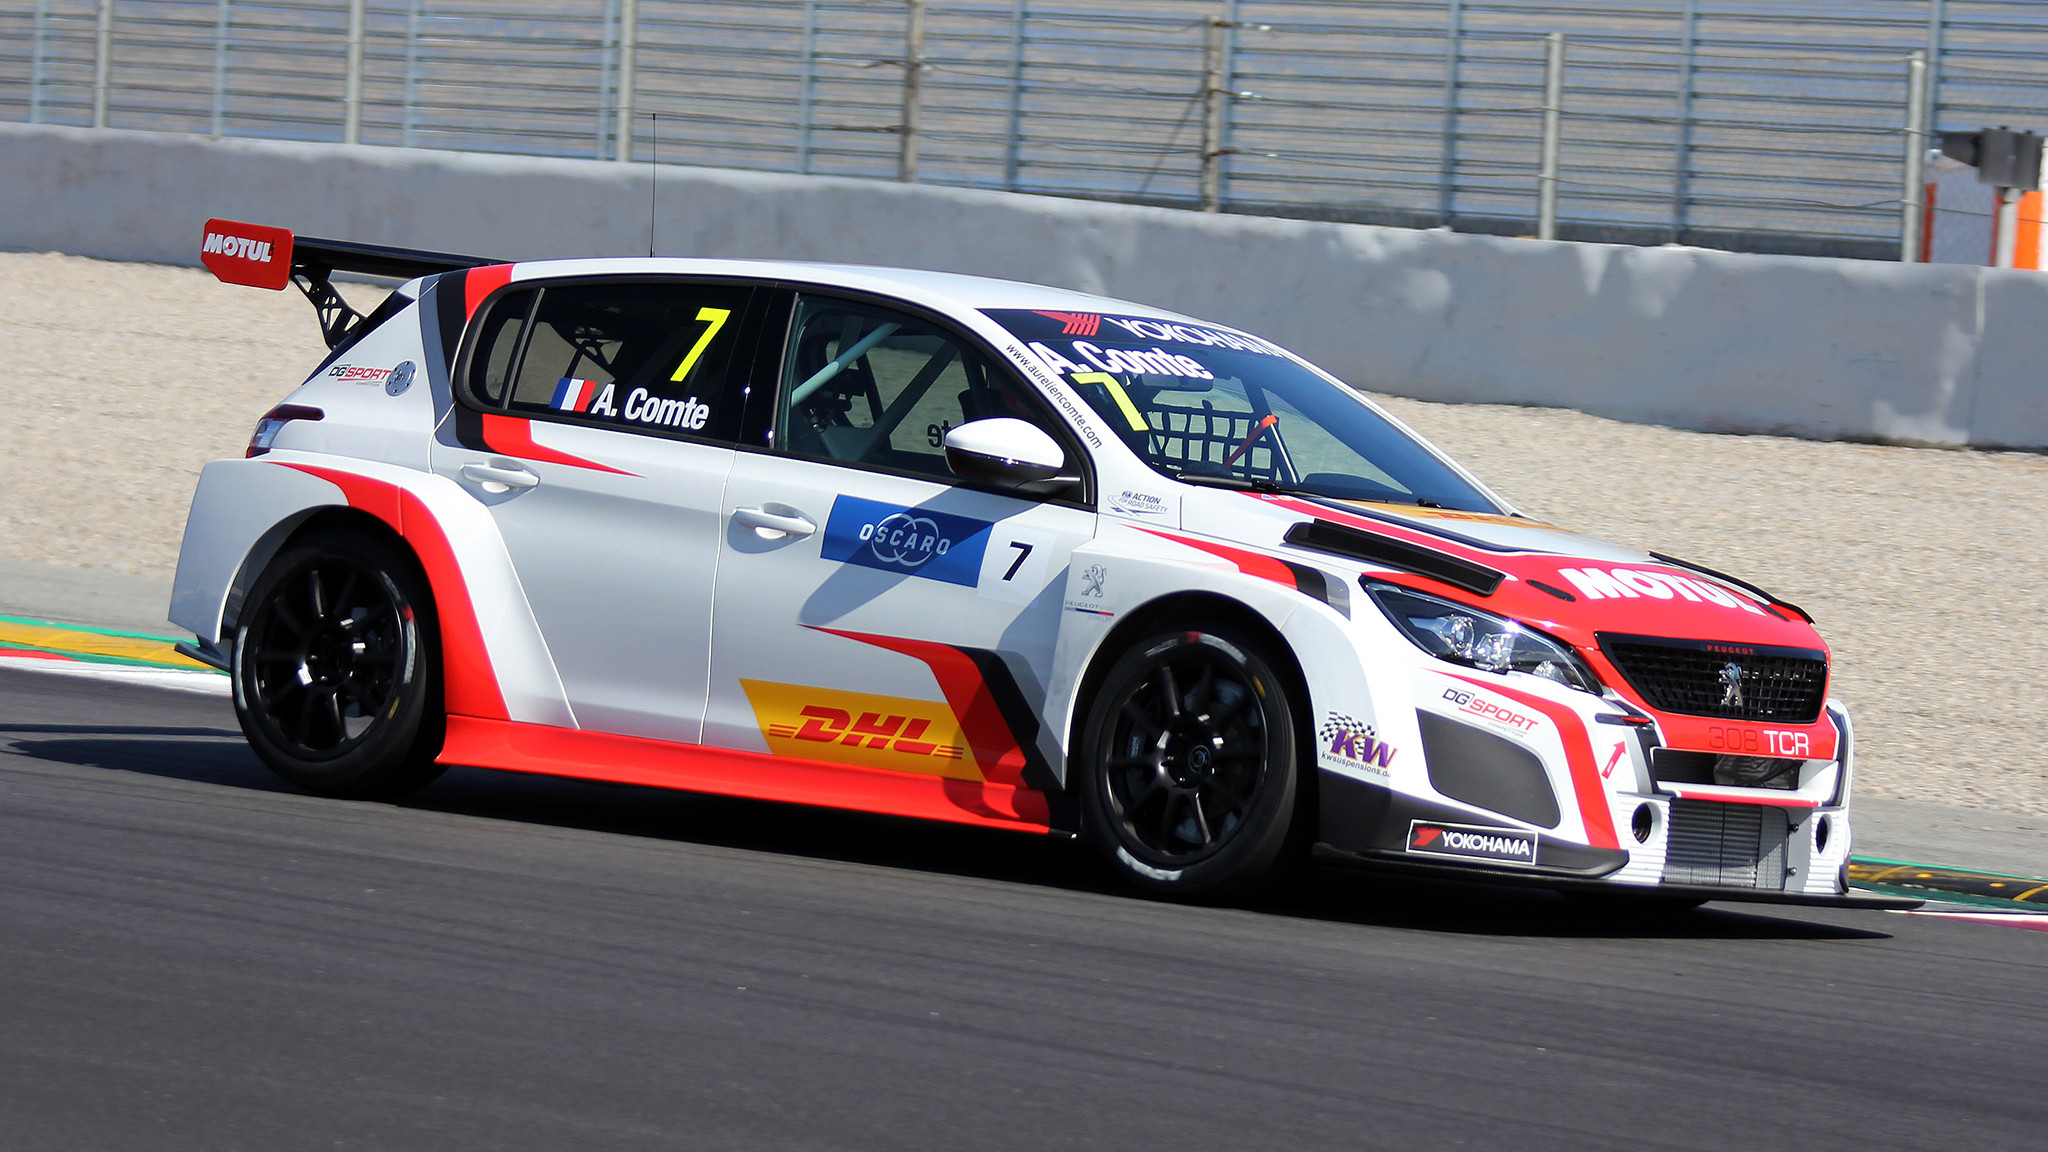 Wtcr Cars On Track For First Official Joint Test At